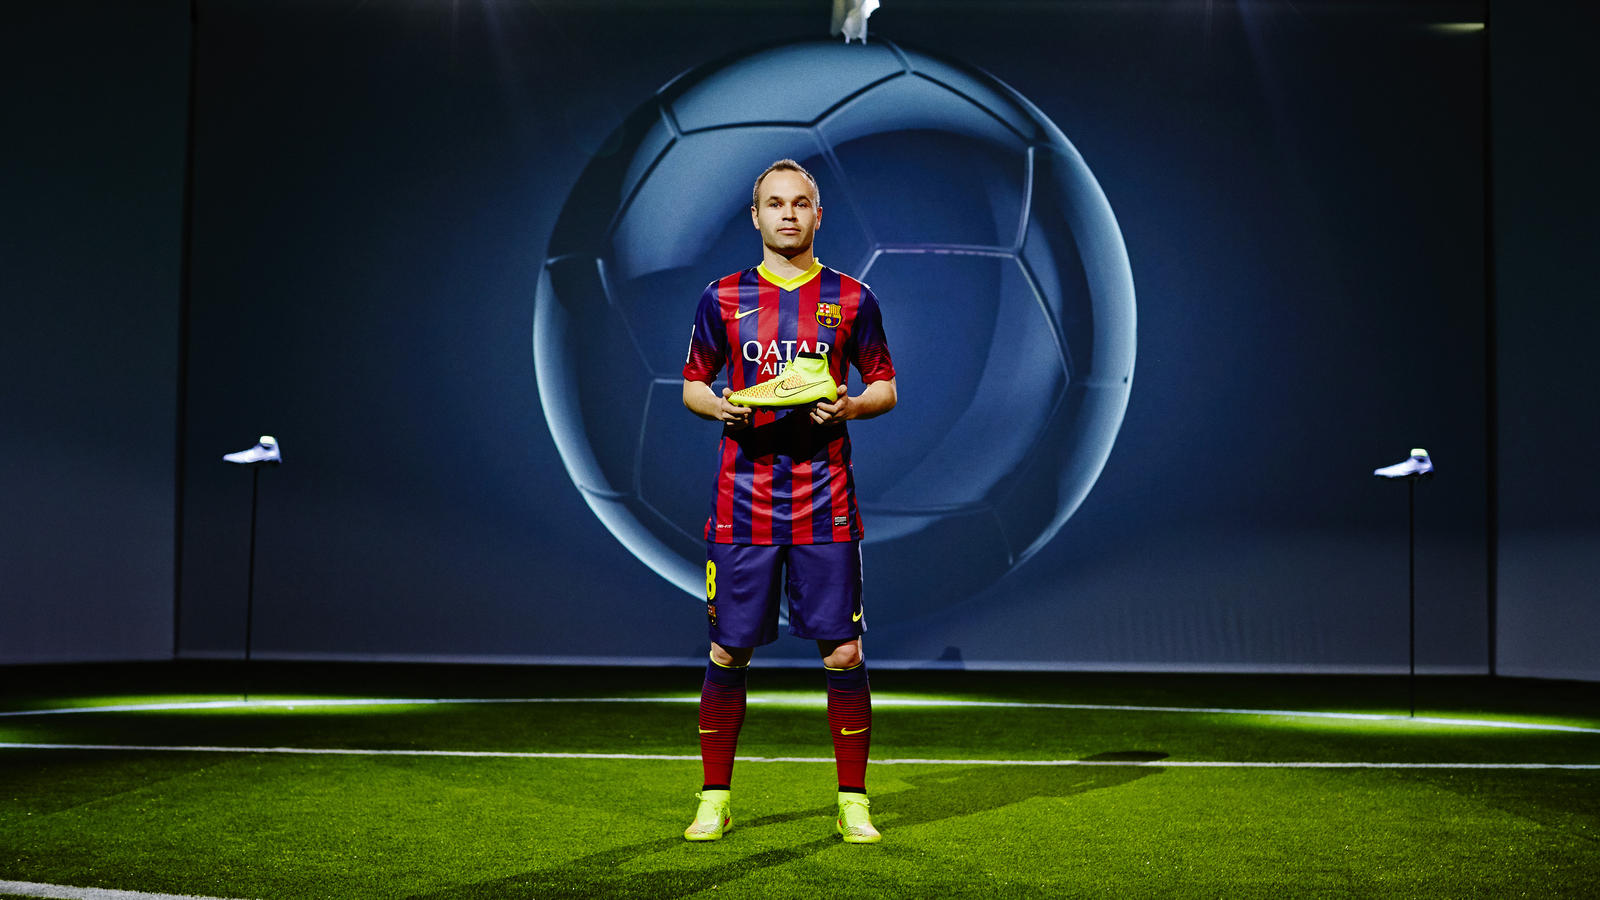 Andres Iniesta and The Magista. nike magista volt hyperpunch 5.  nike magista volt hyperpunch 3. nike magista volt hyperpunch 4 632c635acf157